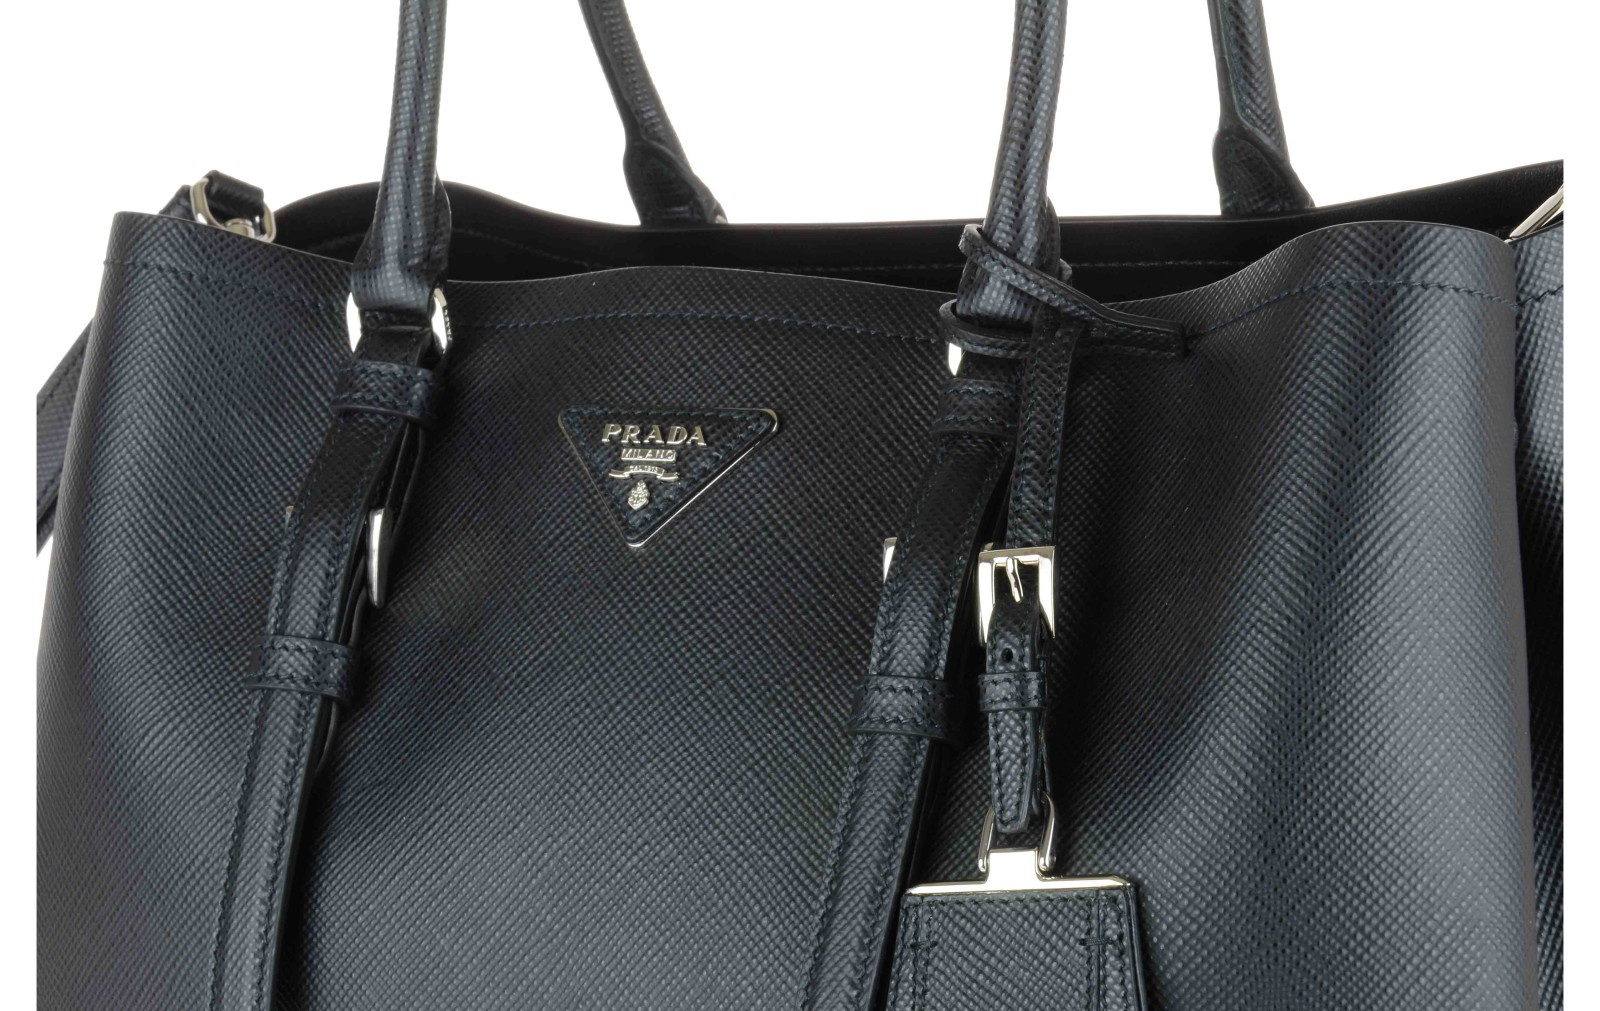 chanel diaper bag tote - prada borsello pelle nera